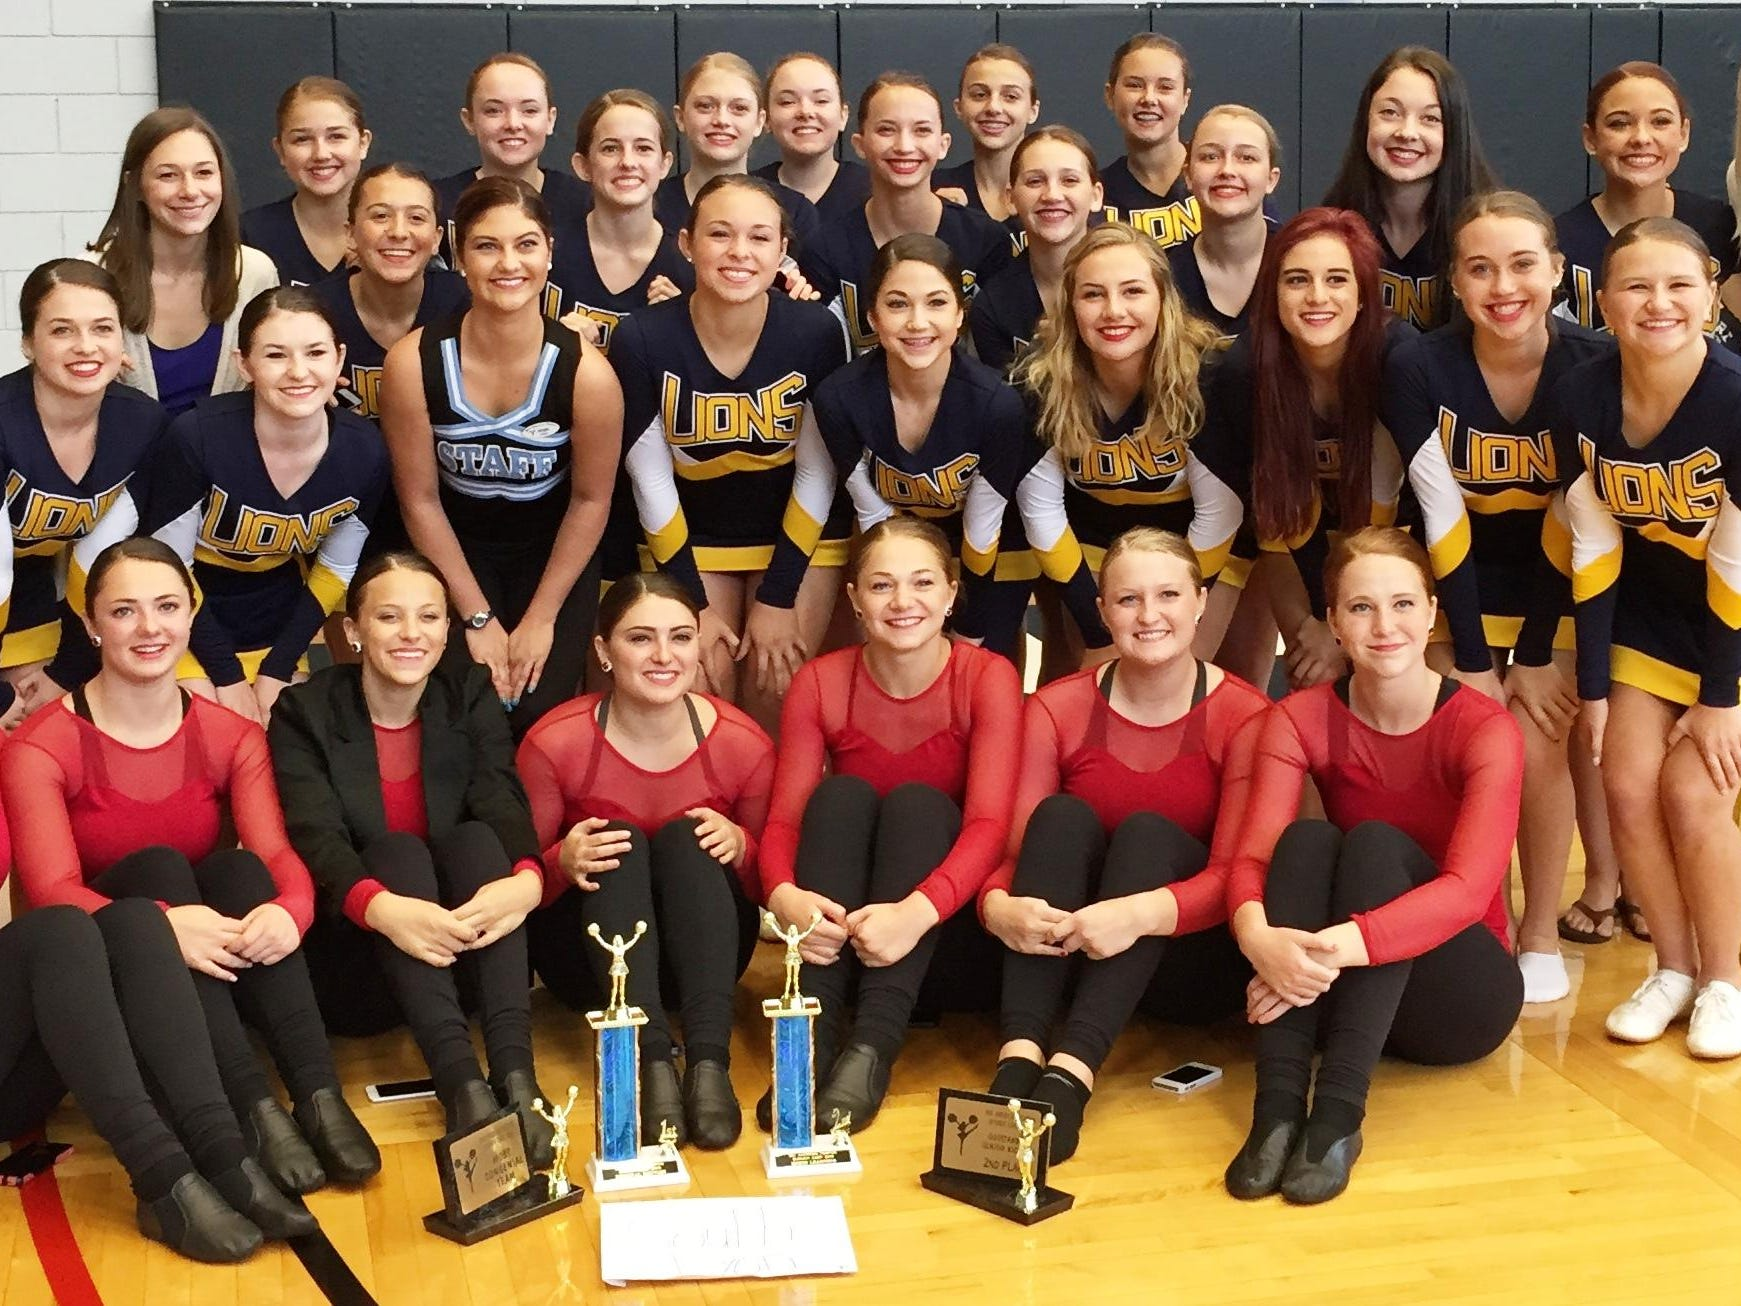 The 2015-2016 South Lyon High School varsity pompon team earned a first-place award for their performance at the Mid American competition, June 19-22, at Davenport University in Grand Rapids. South Lyon, coached by Leah Seery and Chelsea Amman, also added seconds for kick line and speed learning routines, while the seniors also finished second in kickline. Named to the Mid American All Star team was senior Caitlin Cavicchiolo, senior captain Melissa Finn and junior Callie Manasco. Other team members include seniors Kelsie Schutz (captain), Caitlin Cavicchiolo, Kayla Choiniere, Krista Eeley, Brooke Essenmacher, Gabby Resnick; juniors Lauren Bunker, Jessica Ellis,Leah McIlreavy, Olivia O'Connell, Natalie Perrone, Caroline Perry, Lauren Savanyu, Sydney Smith, Brittney Zabinski; sophomores Emma Campbell, Allison Havrilla, Danielle Havrilla, Katie Jakubik, Evelyn Keller, Bailey Papich, Jenna Potter, Lexie Resnick; and freshmen Caroline Badrak, Molly Thomas and Taylor Vitori.